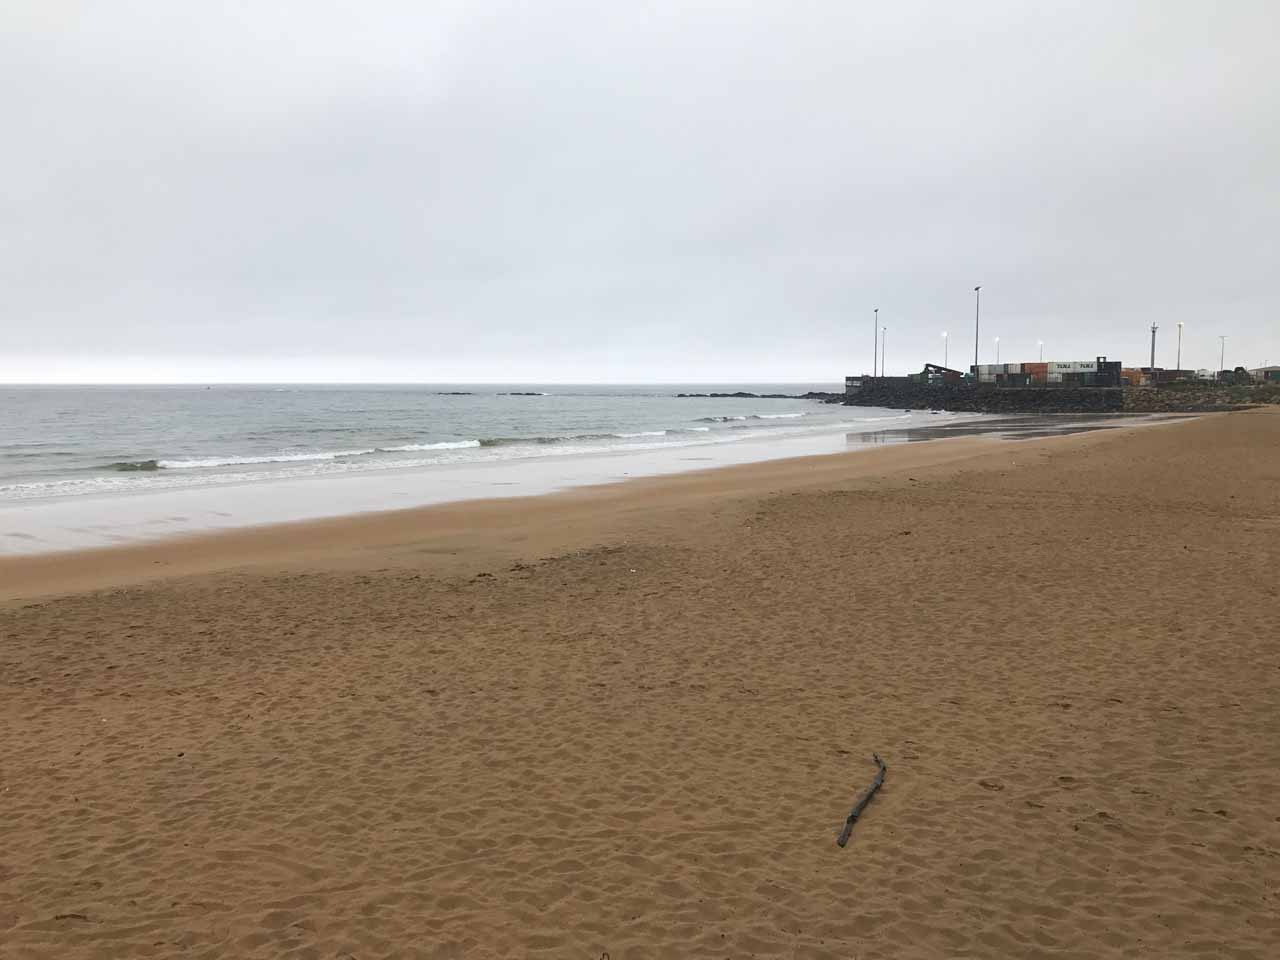 Although the weather wasn't good during our visit to Burnie in 2017, we still got to experience its beach at the Esplanade near the heart of the city's activities